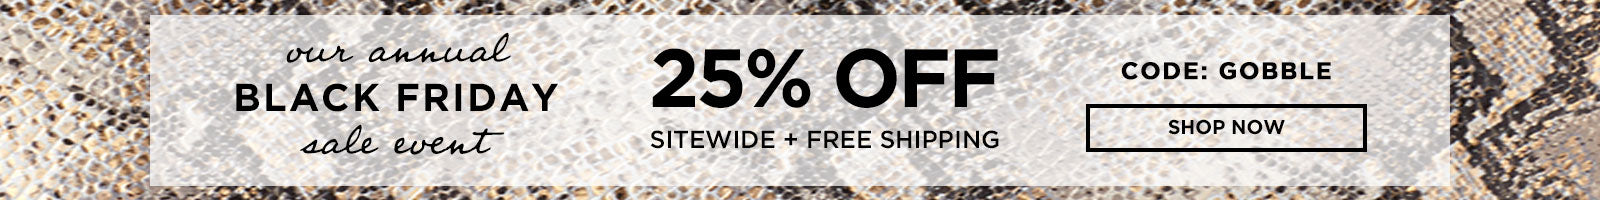 Annual Black Friday Sale - 25% Off Sitewide + Free Shipping! Use Code: GOBBLE